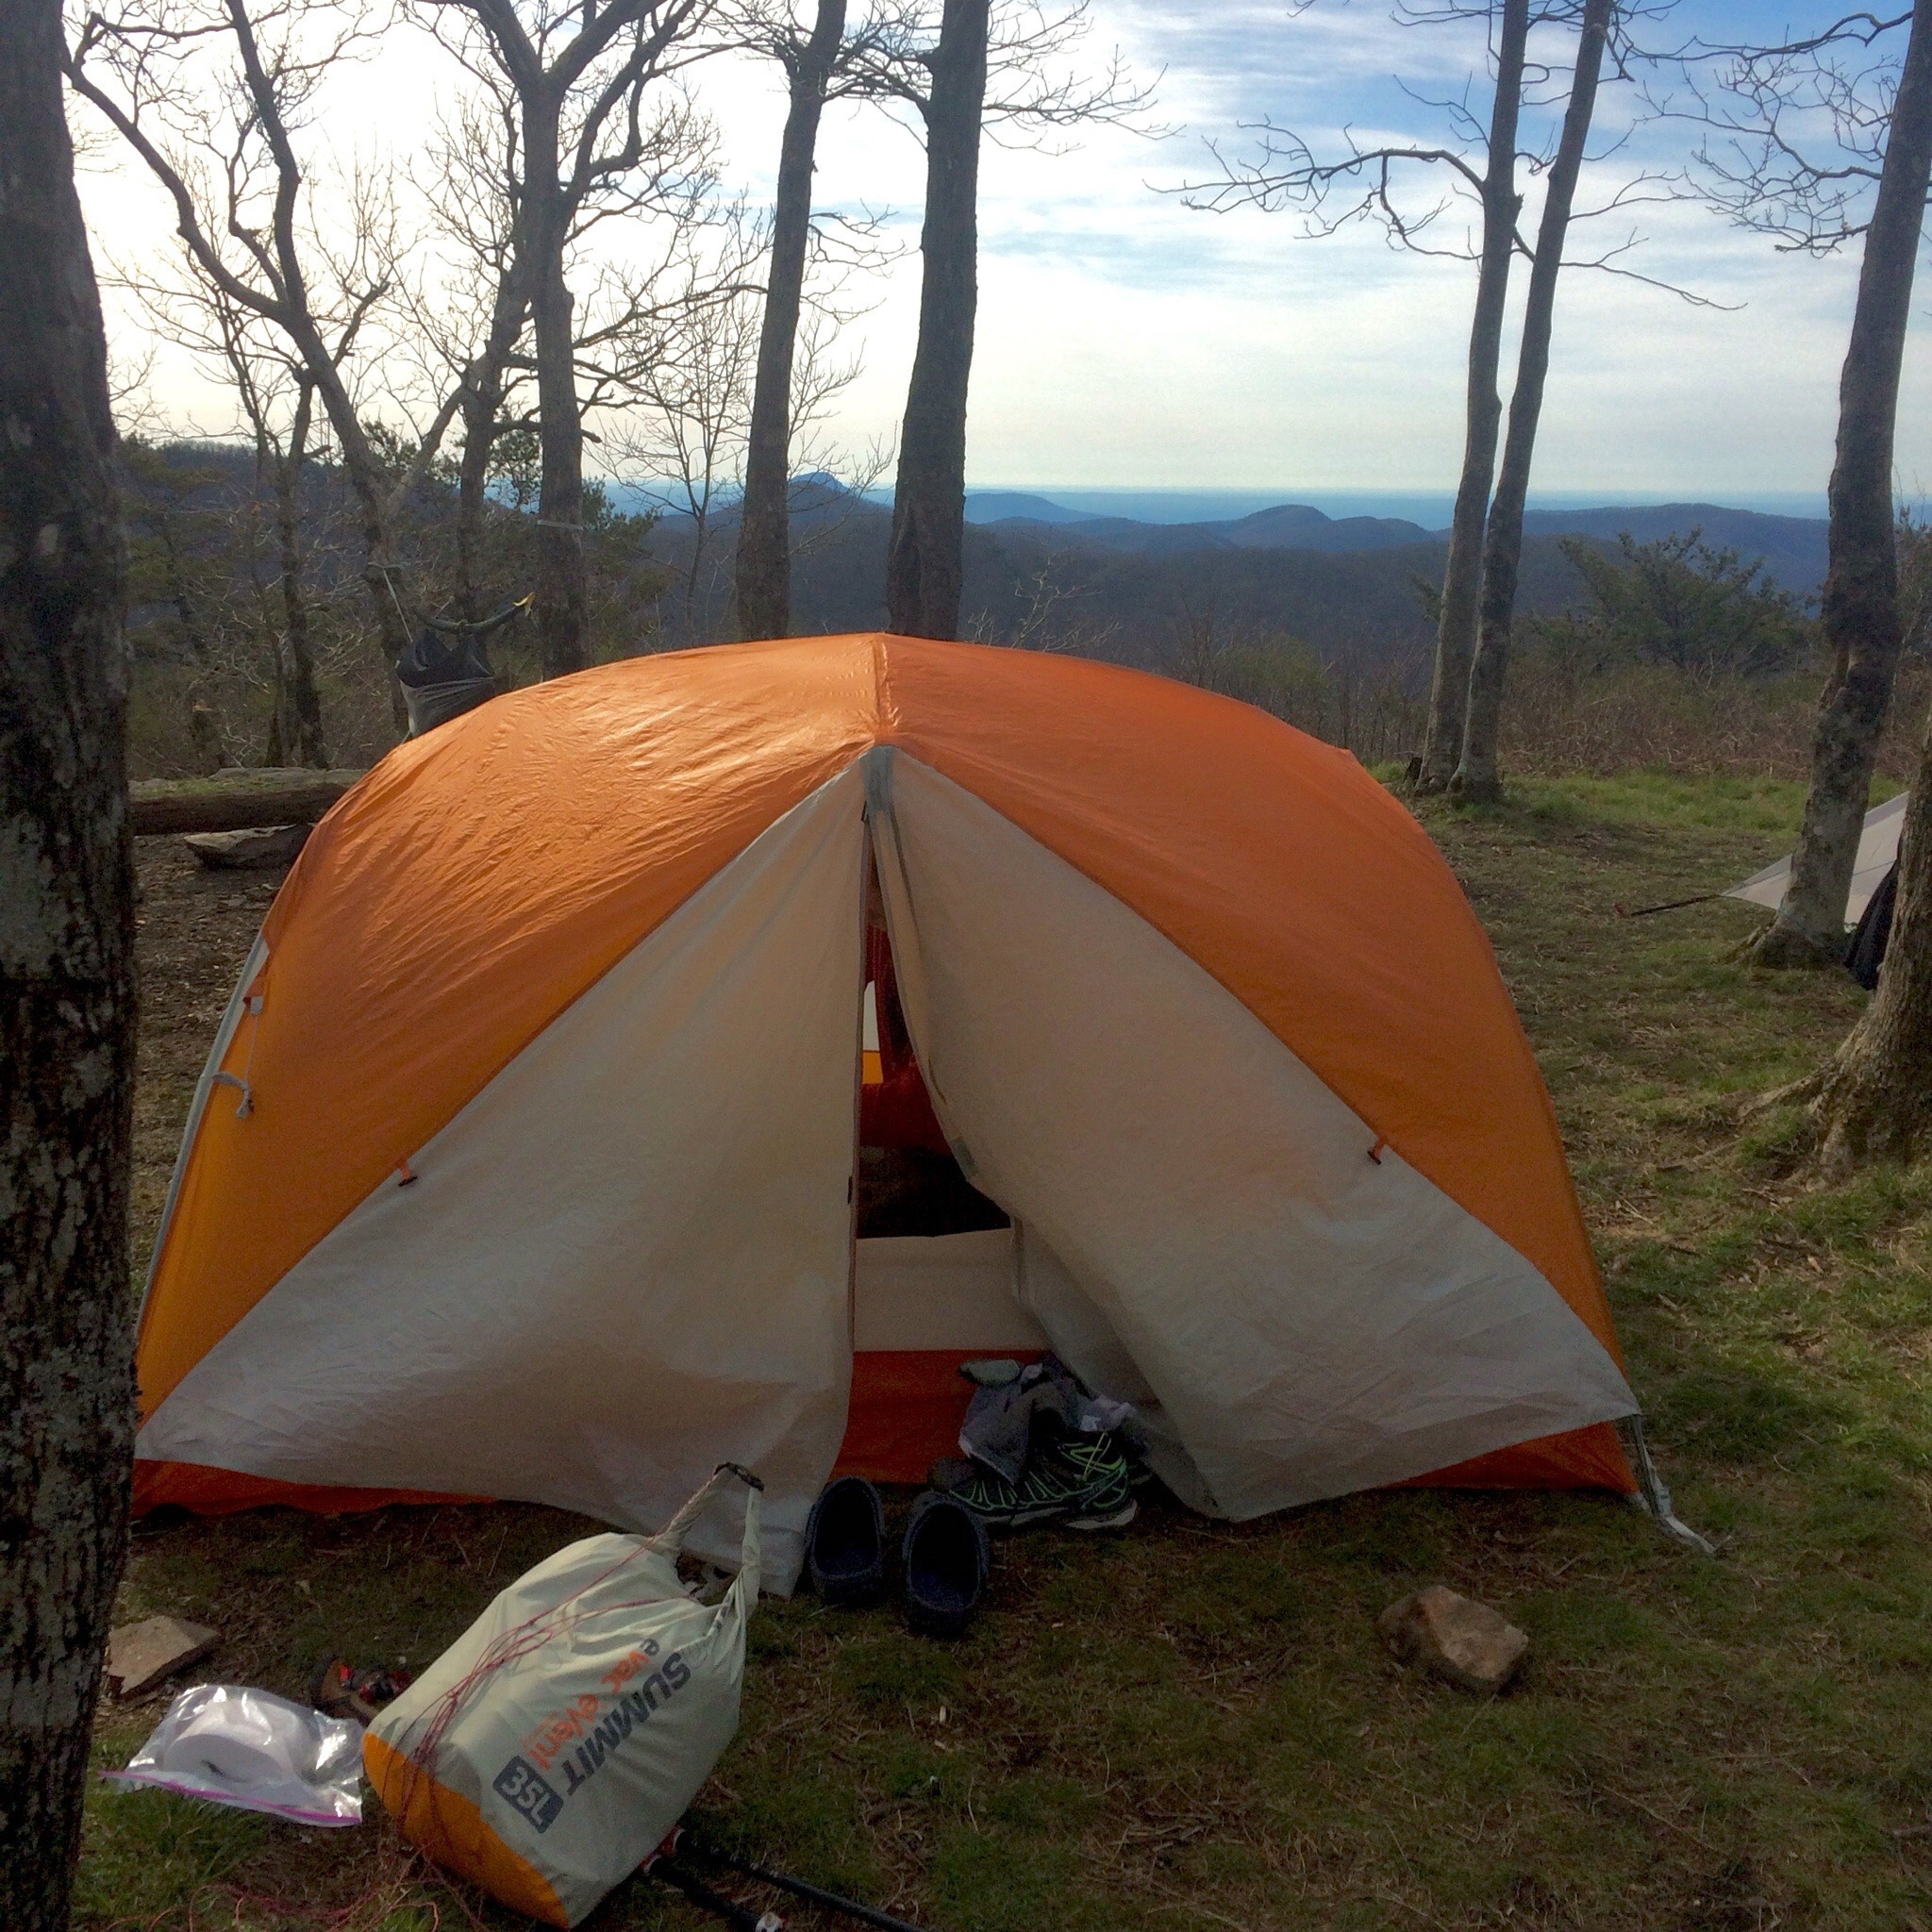 Plus Big Agnes tents are awesome tried and tested true. We used it for over 2000 miles of the Appalachian Trail and our tent became our home ... & Gear Review: Big Agnes Copper Spur UL3 - The Trek